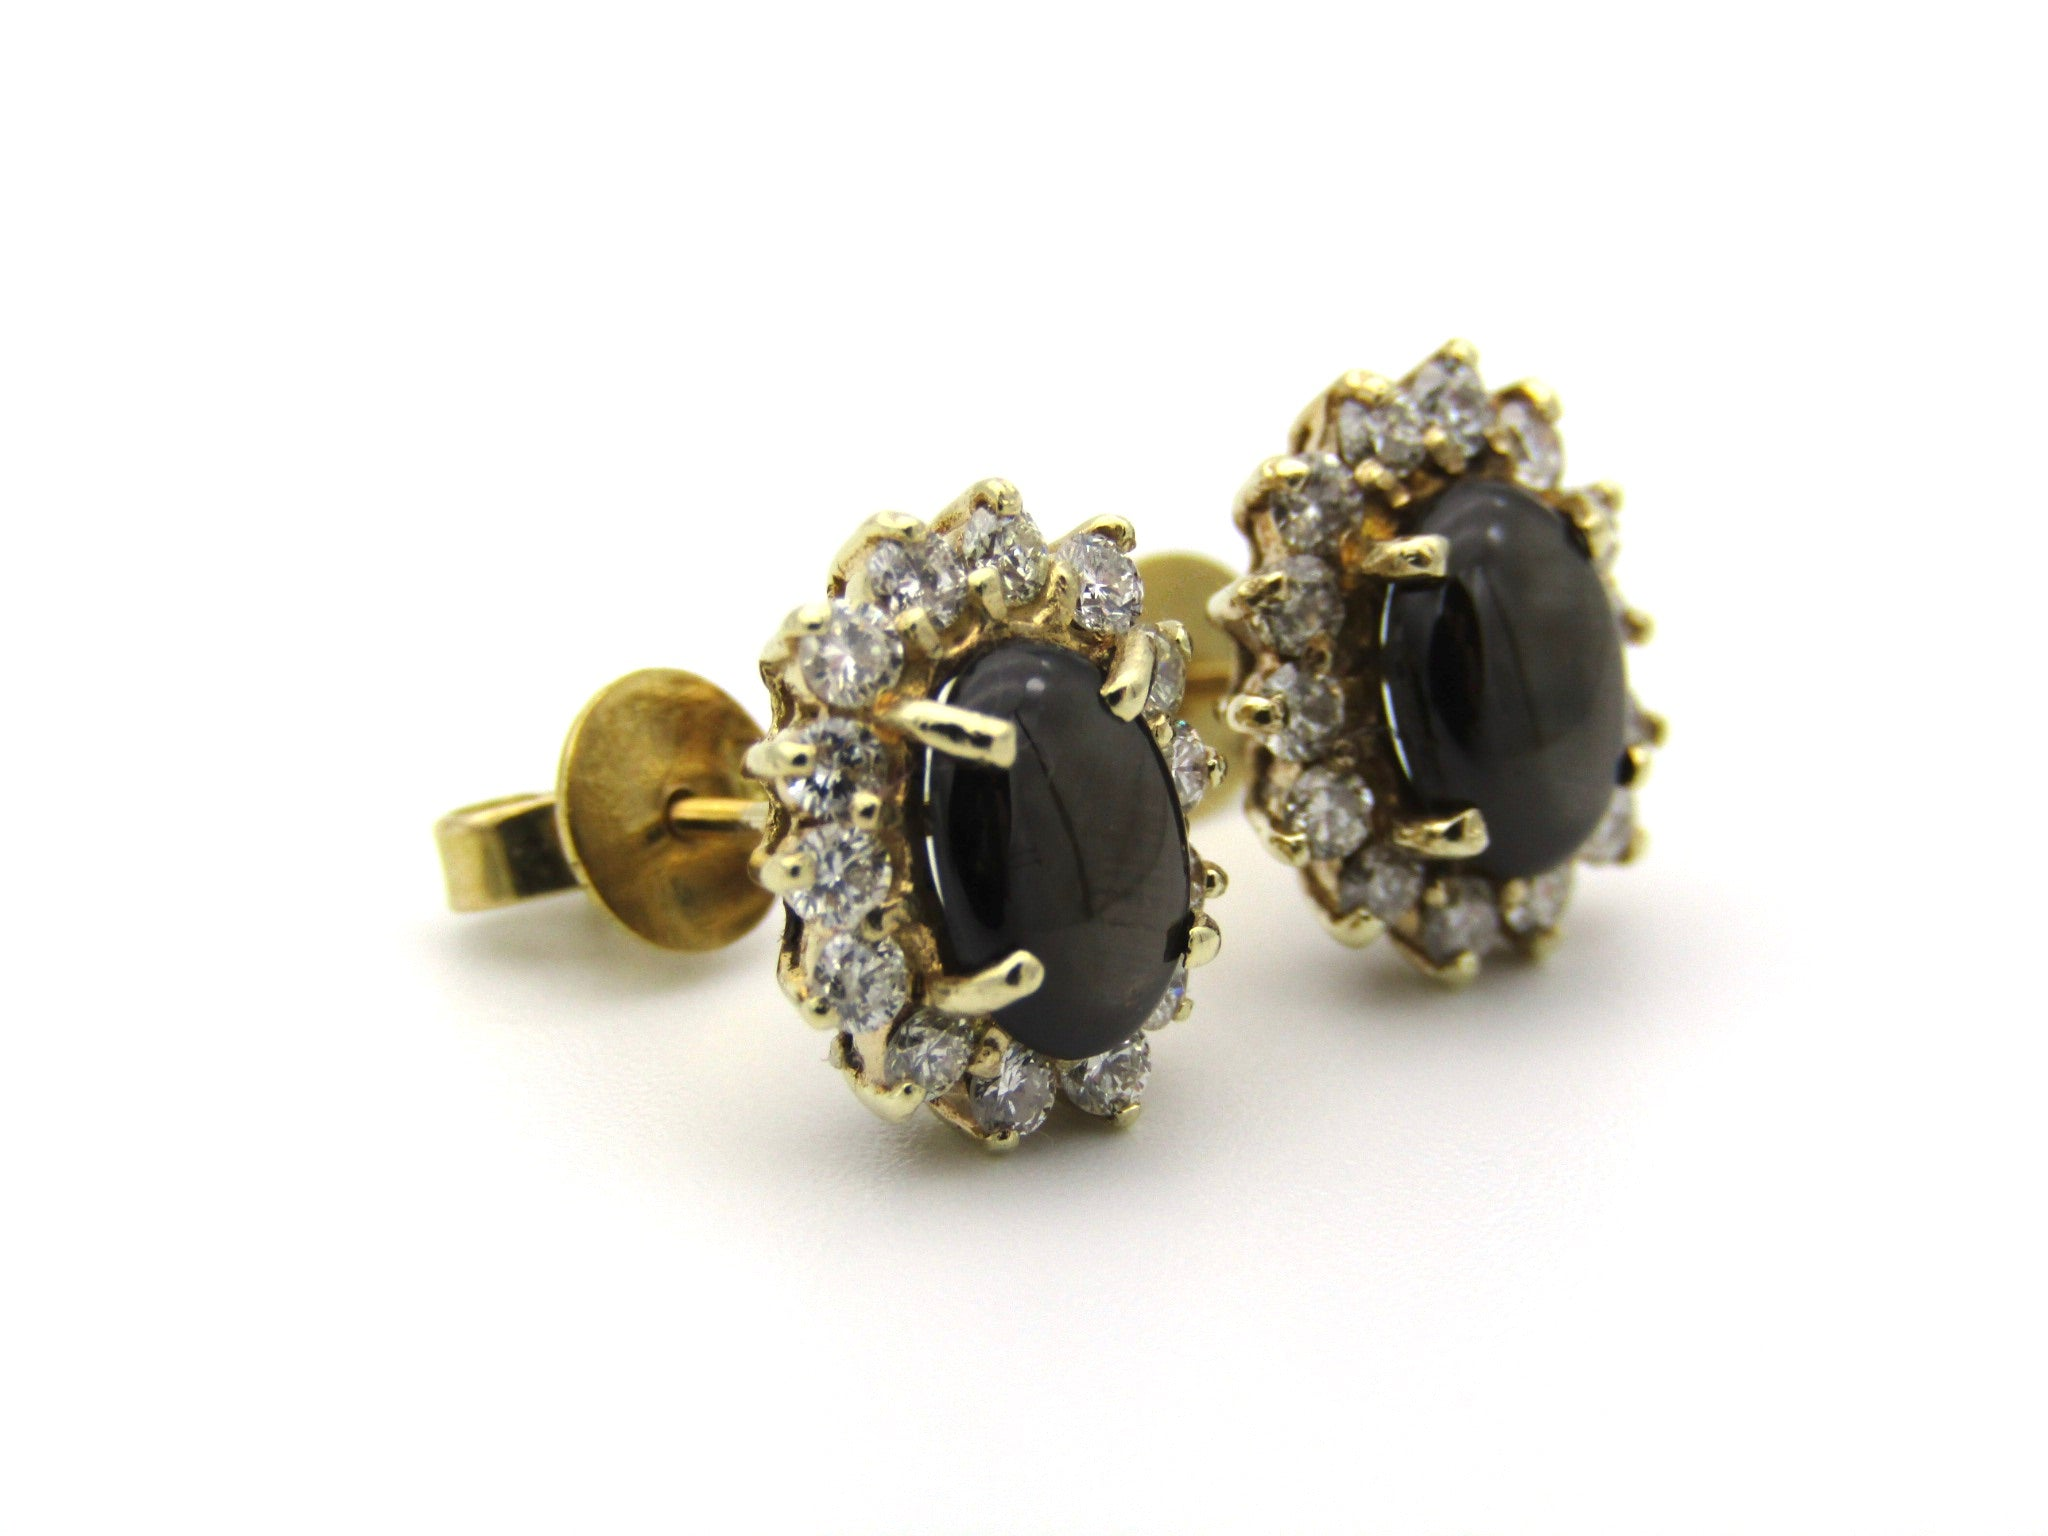 A pair of 18K gold black star sapphire and diamond earrings.